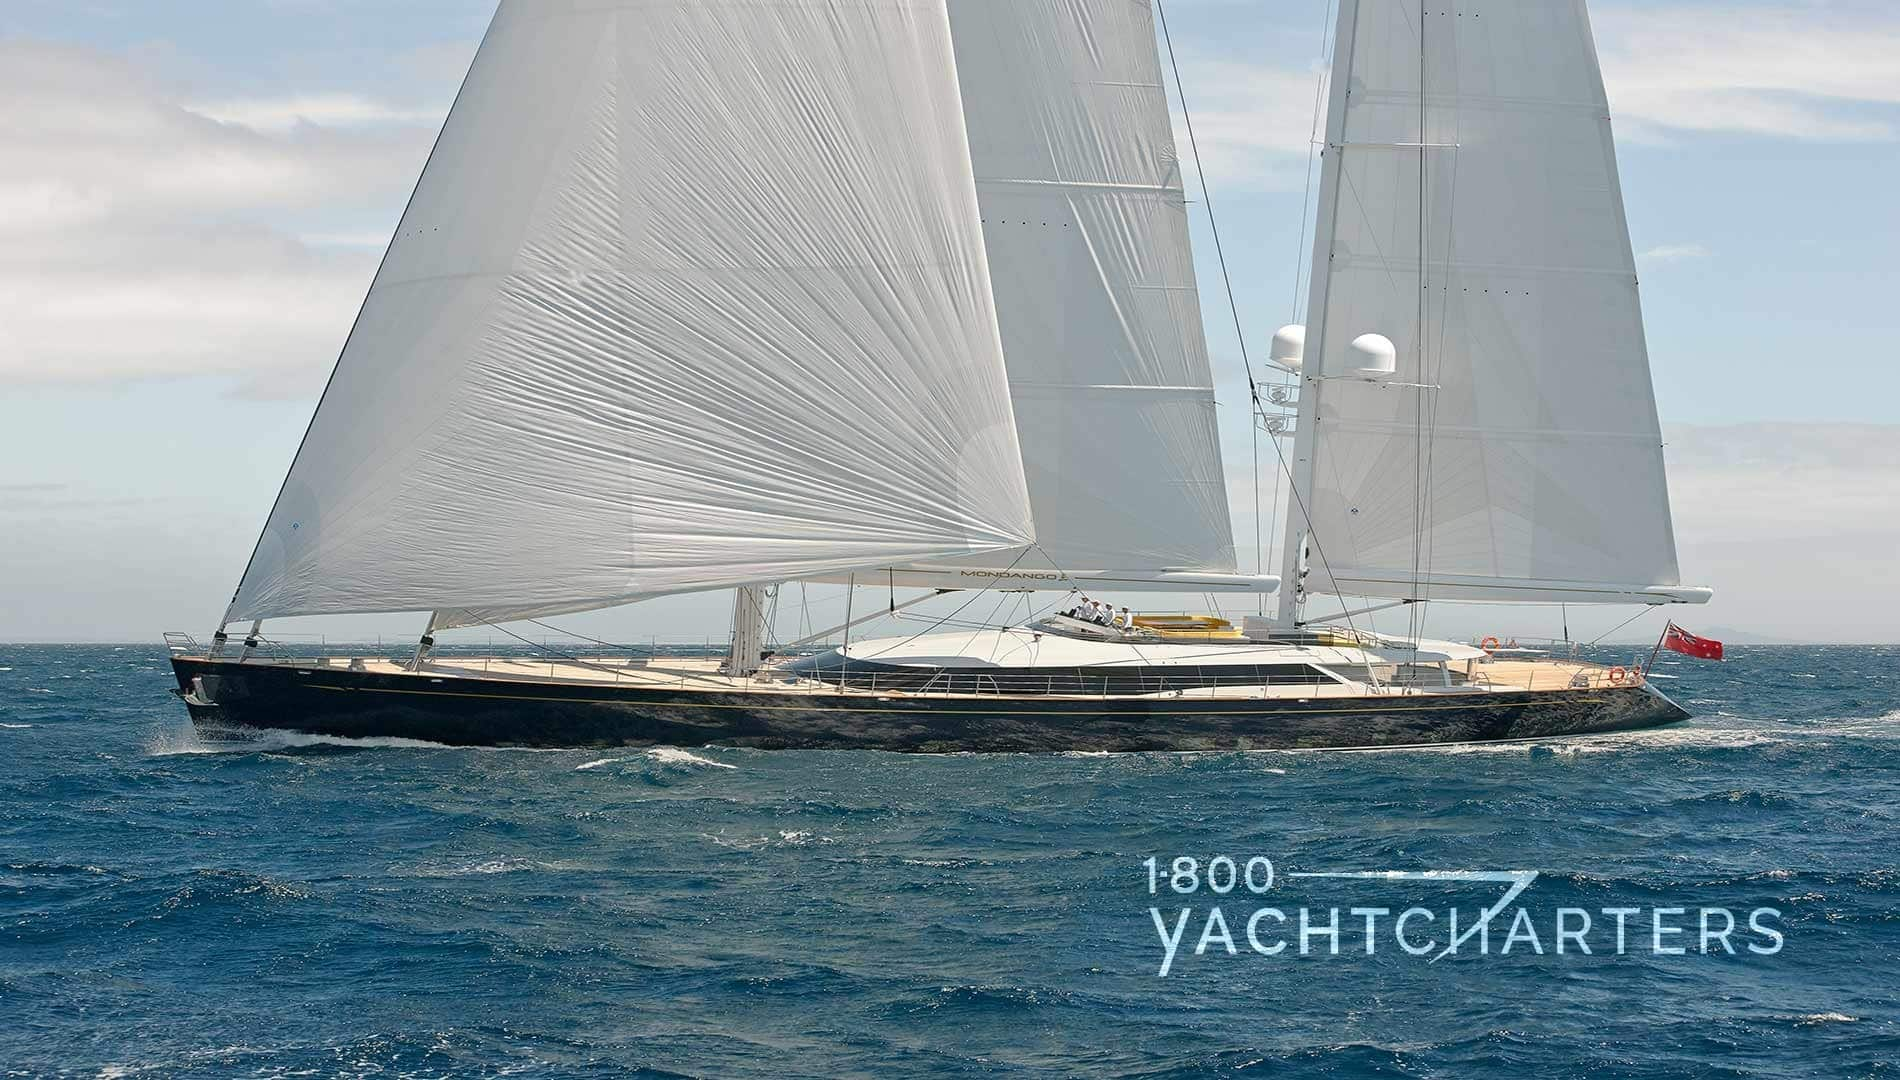 MONDANGO private luxury yacht charter sailboat underway